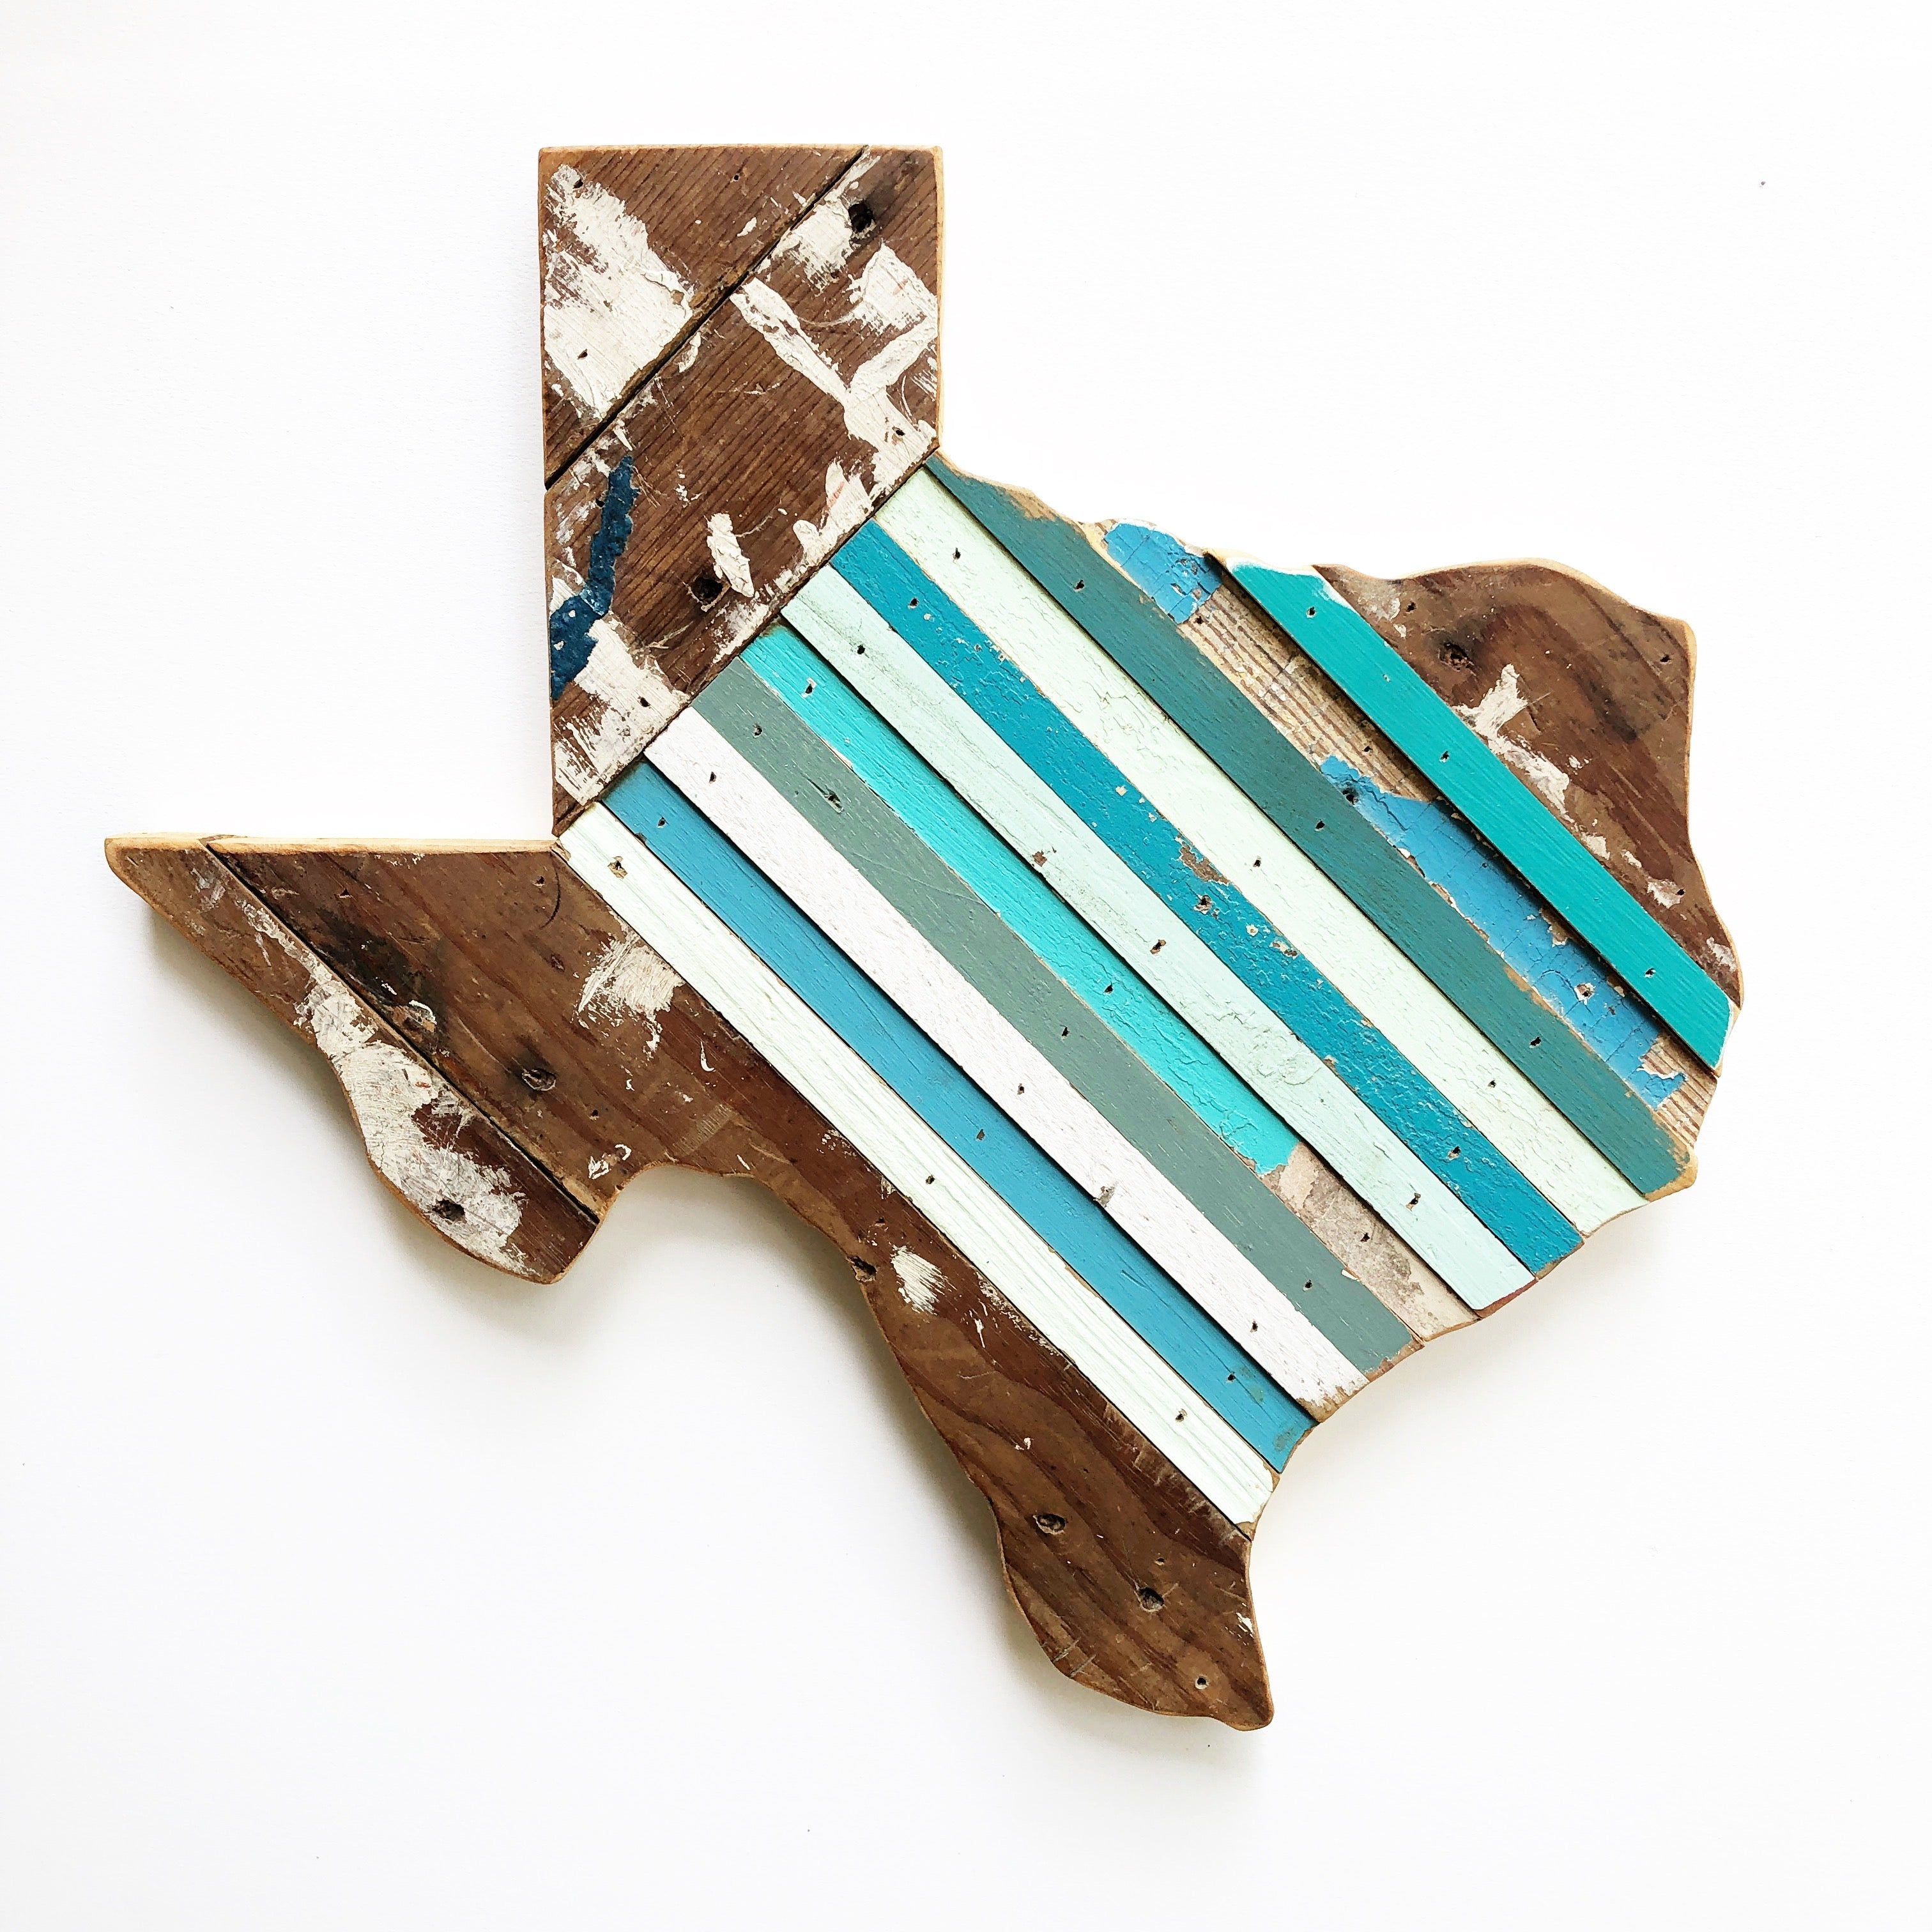 "TEXAS NO. 337 - 18"" (One-of-a-Kind)"